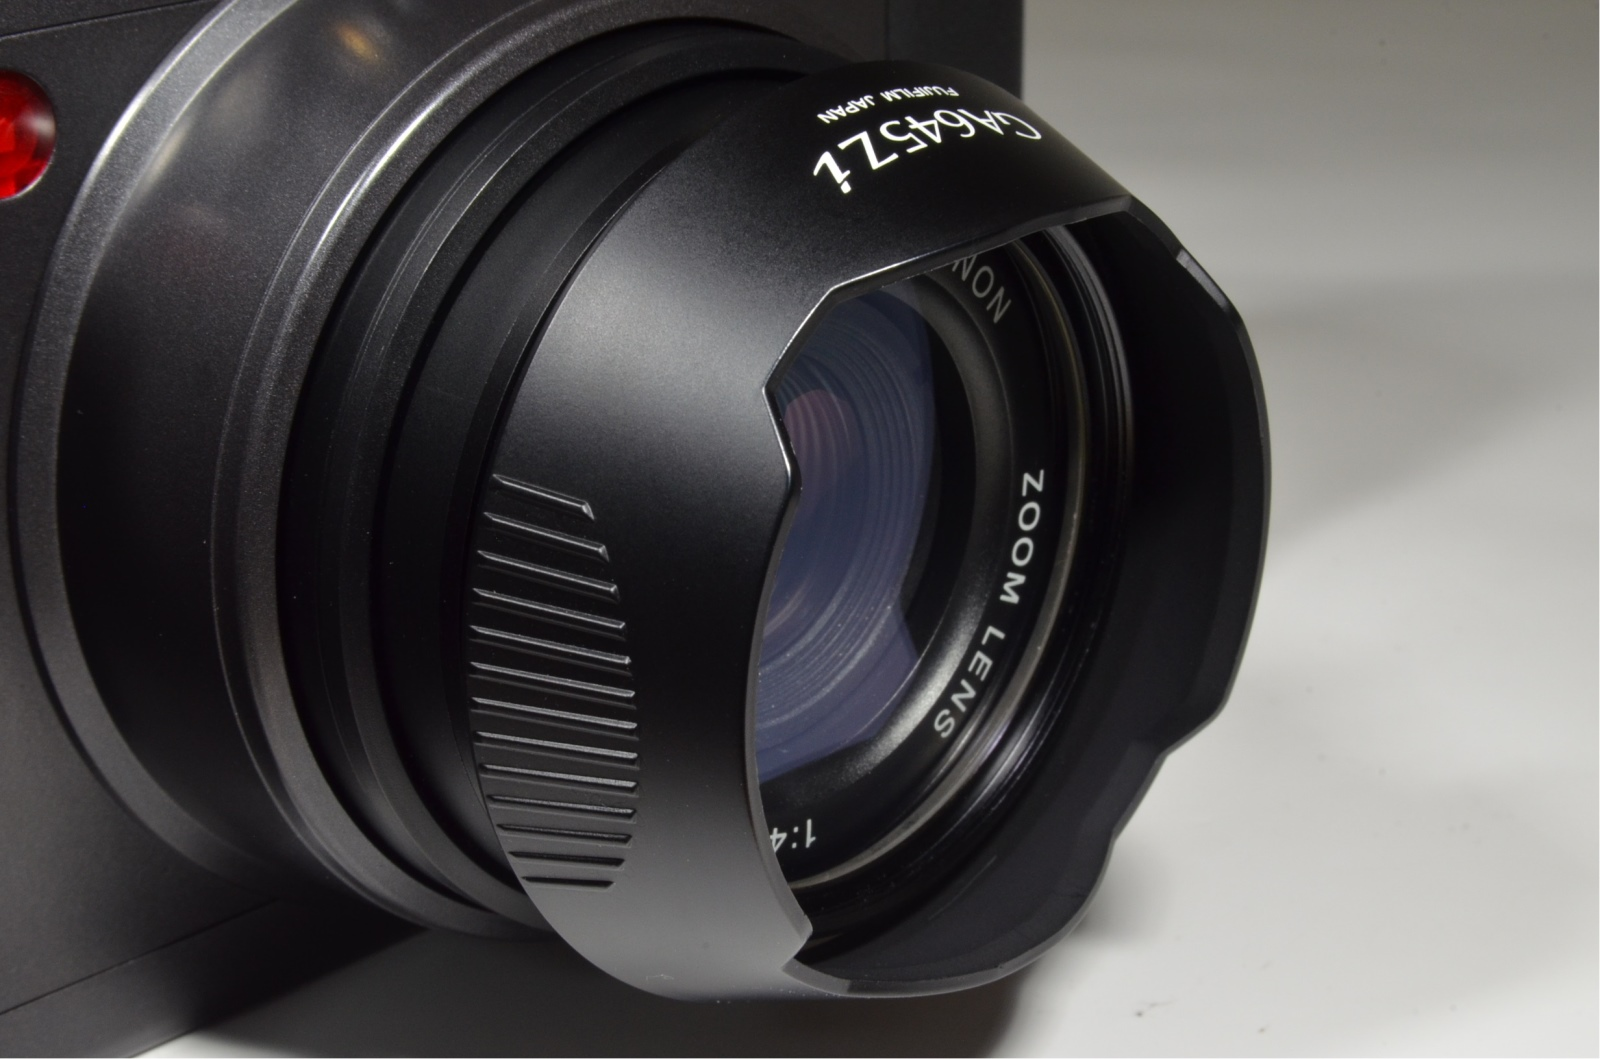 fujifilm ga645zi black zoom 55-90mm f4.5-6.9